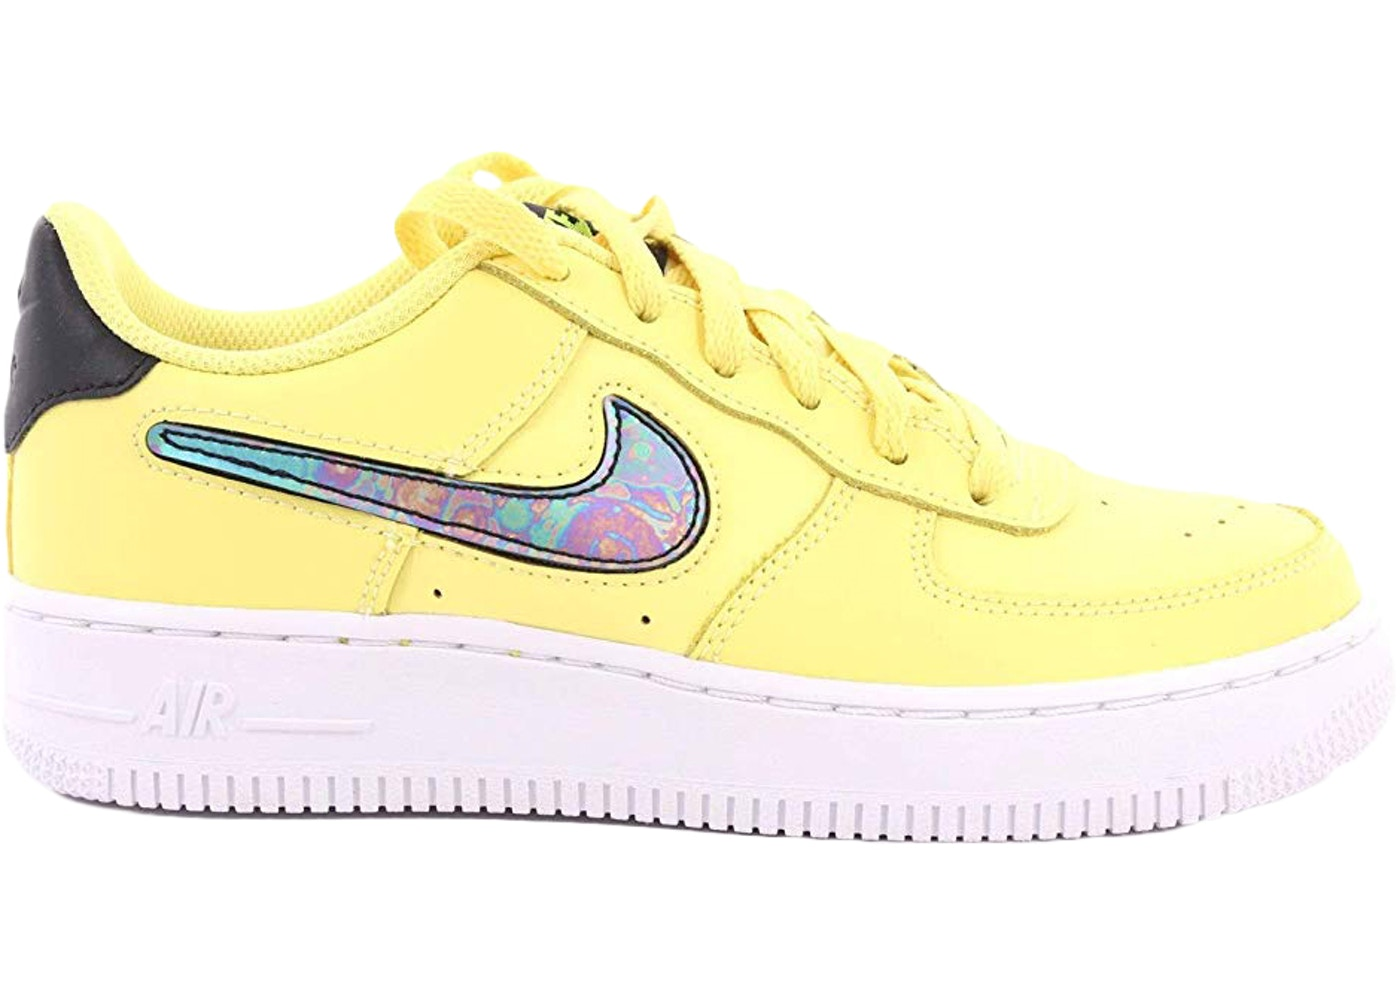 partícula antiguo Inapropiado  Nike AIr Force 1 LV8 3 Yellow Pulse (GS) - AR7446-700